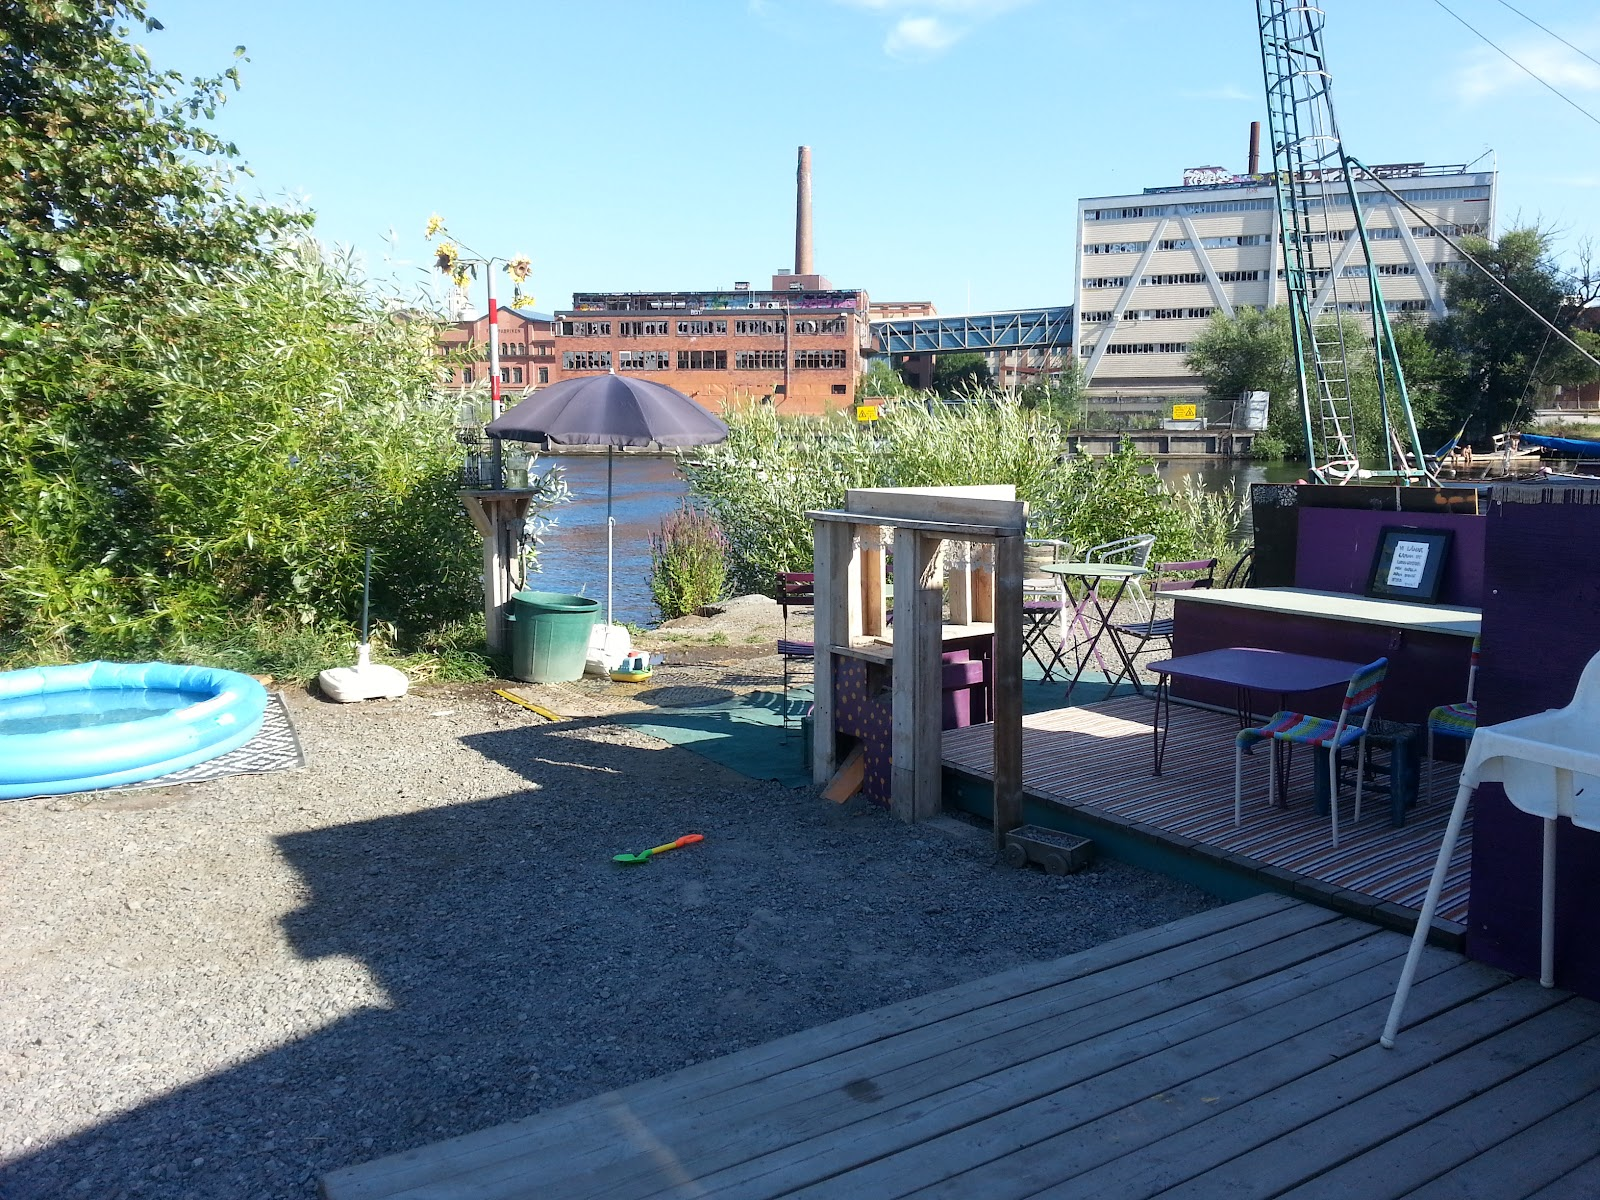 Image shows the children's area next to the café. There is a table and chairs, a small pool and some toys.